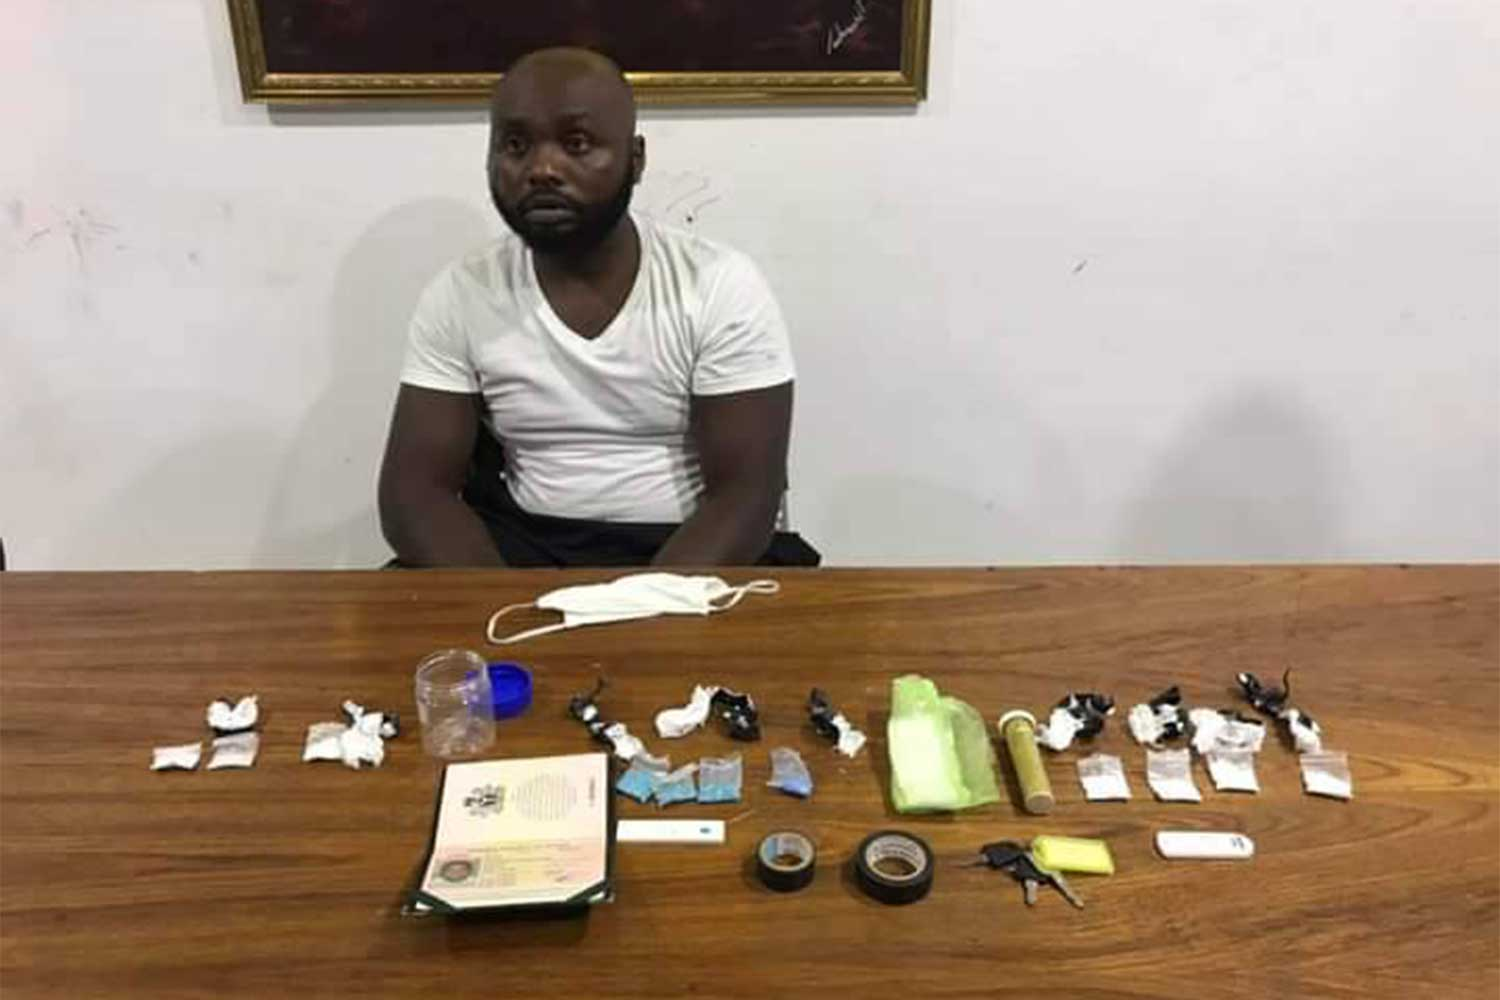 Davidsmith Chinazaekpere Ejiogo, 26, a Nigerian national, at Patong police station after his arrest with small amounts of crystal methamphetamine, cocaine and ecstasy in his pockets, in Patong area, Phuket. (Photo: Achadtaya Chuenniran)